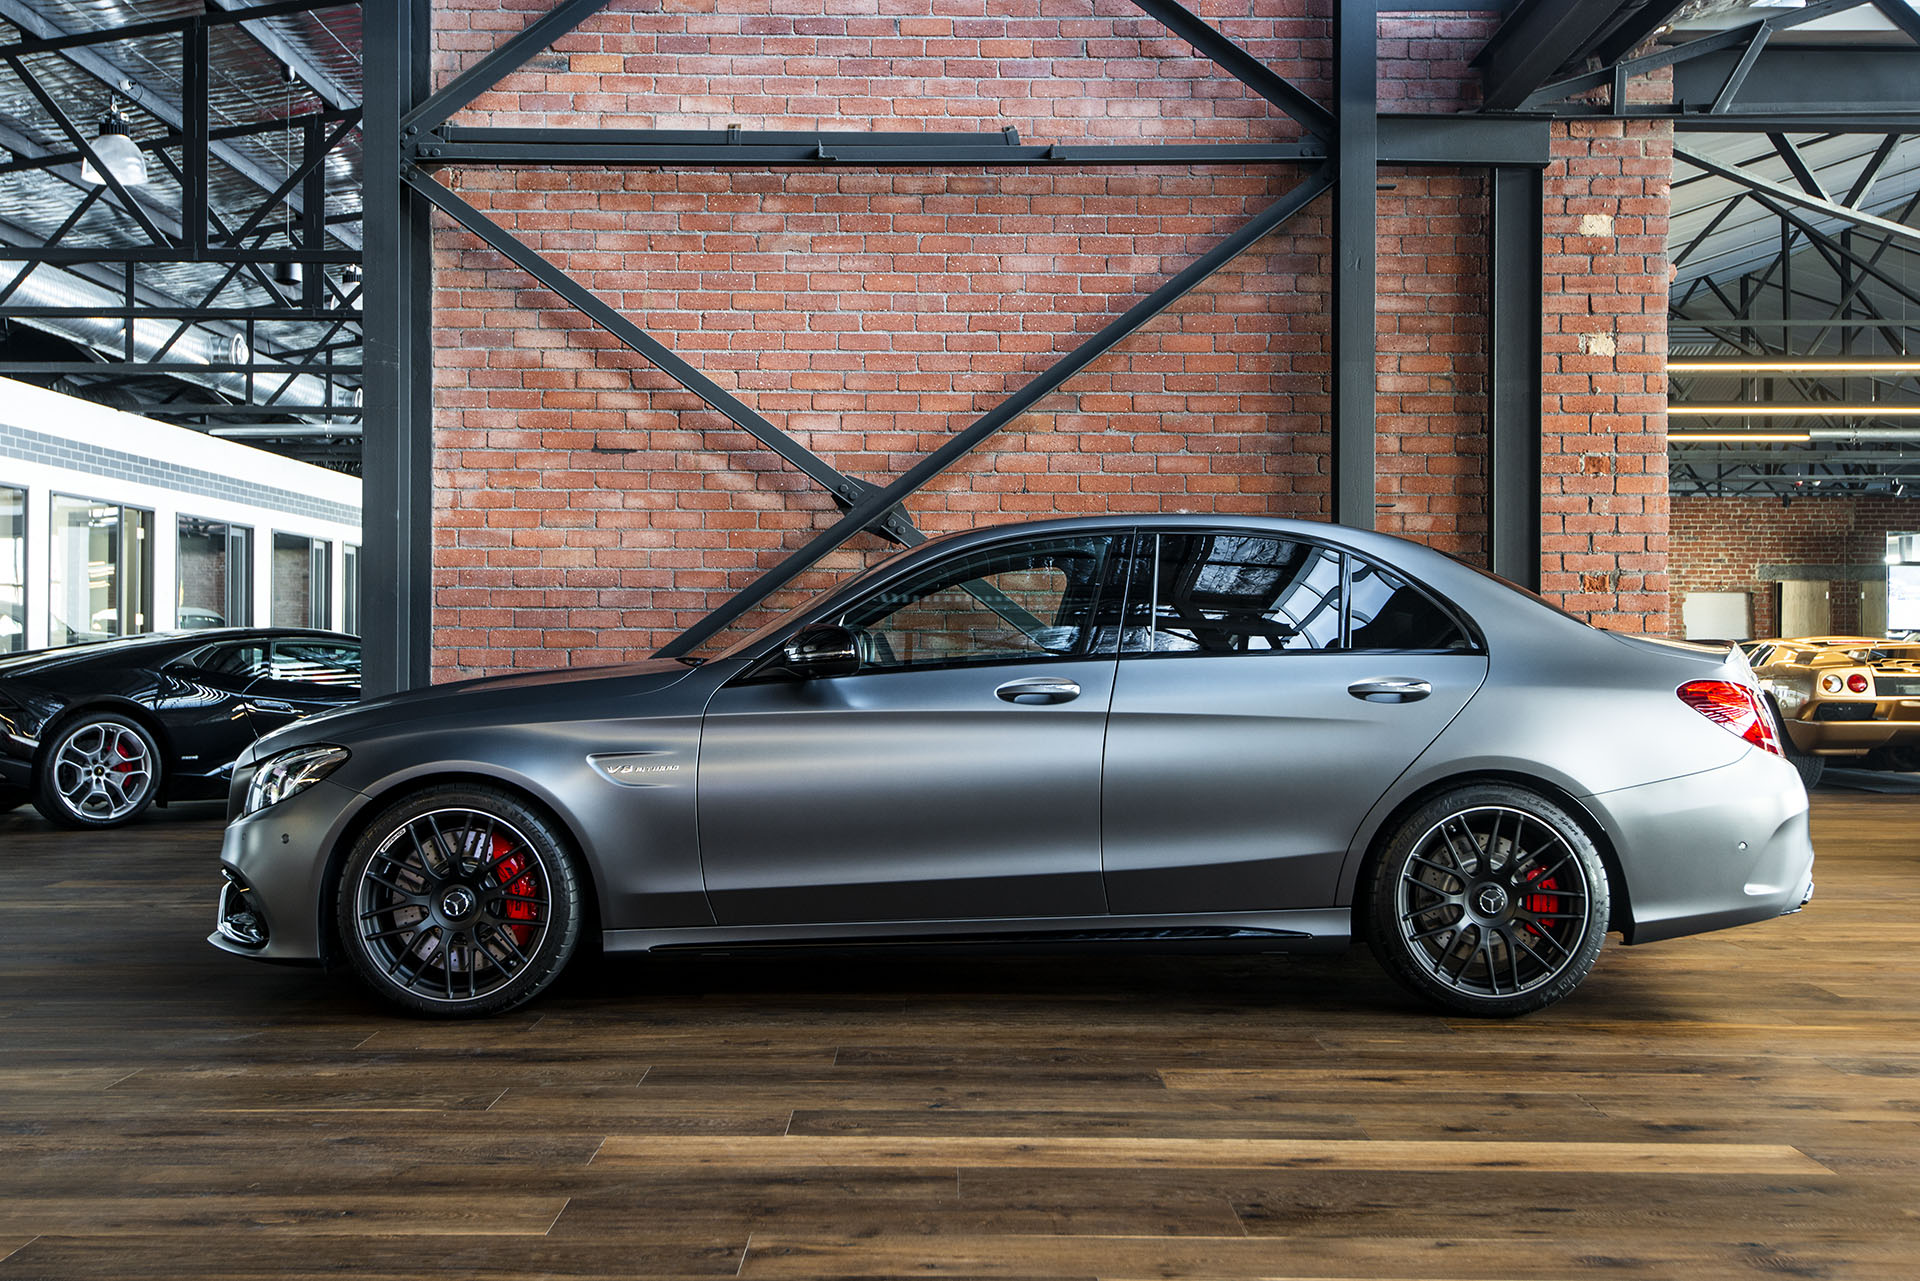 Mercedes Benz Parts >> 2017 Mercedes C63S AMG - Richmonds - Classic and Prestige Cars - Storage and Sales - Adelaide ...